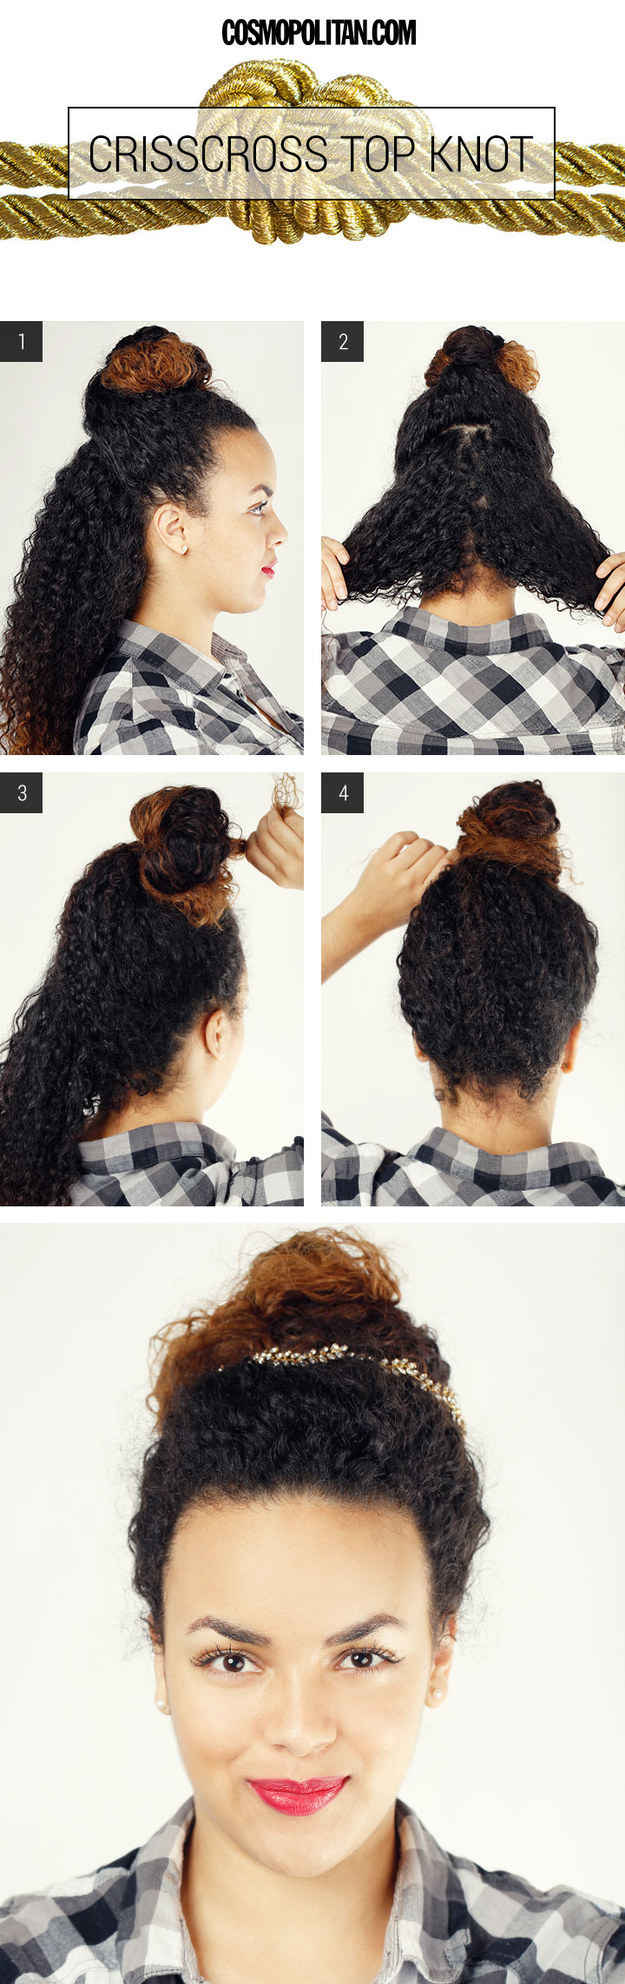 Keep things simple with a crisscross top knot.